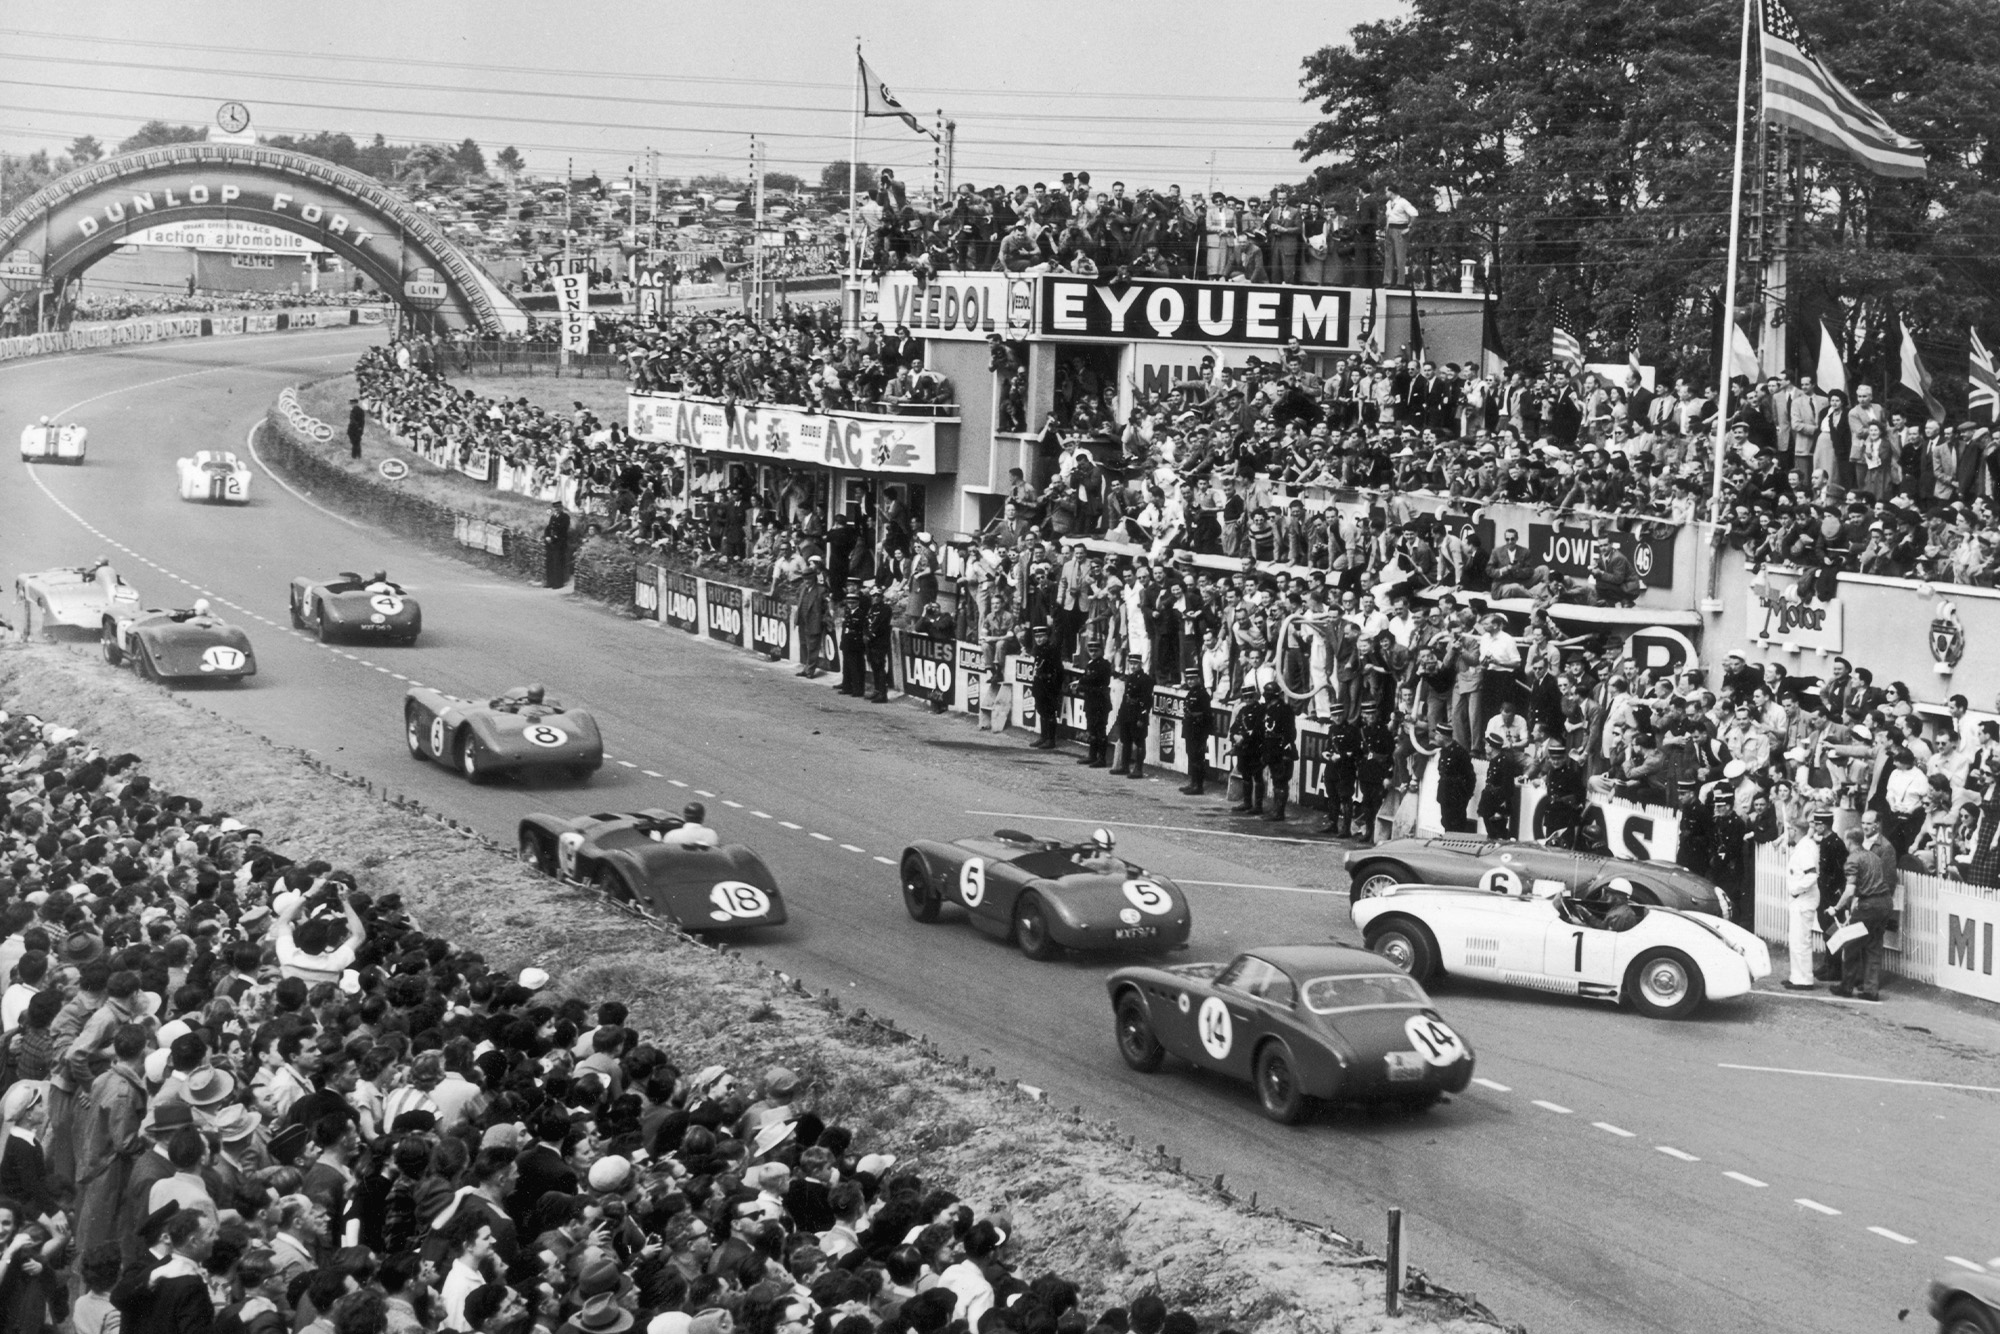 Start of the 1952 Le Mans 24 Hours race